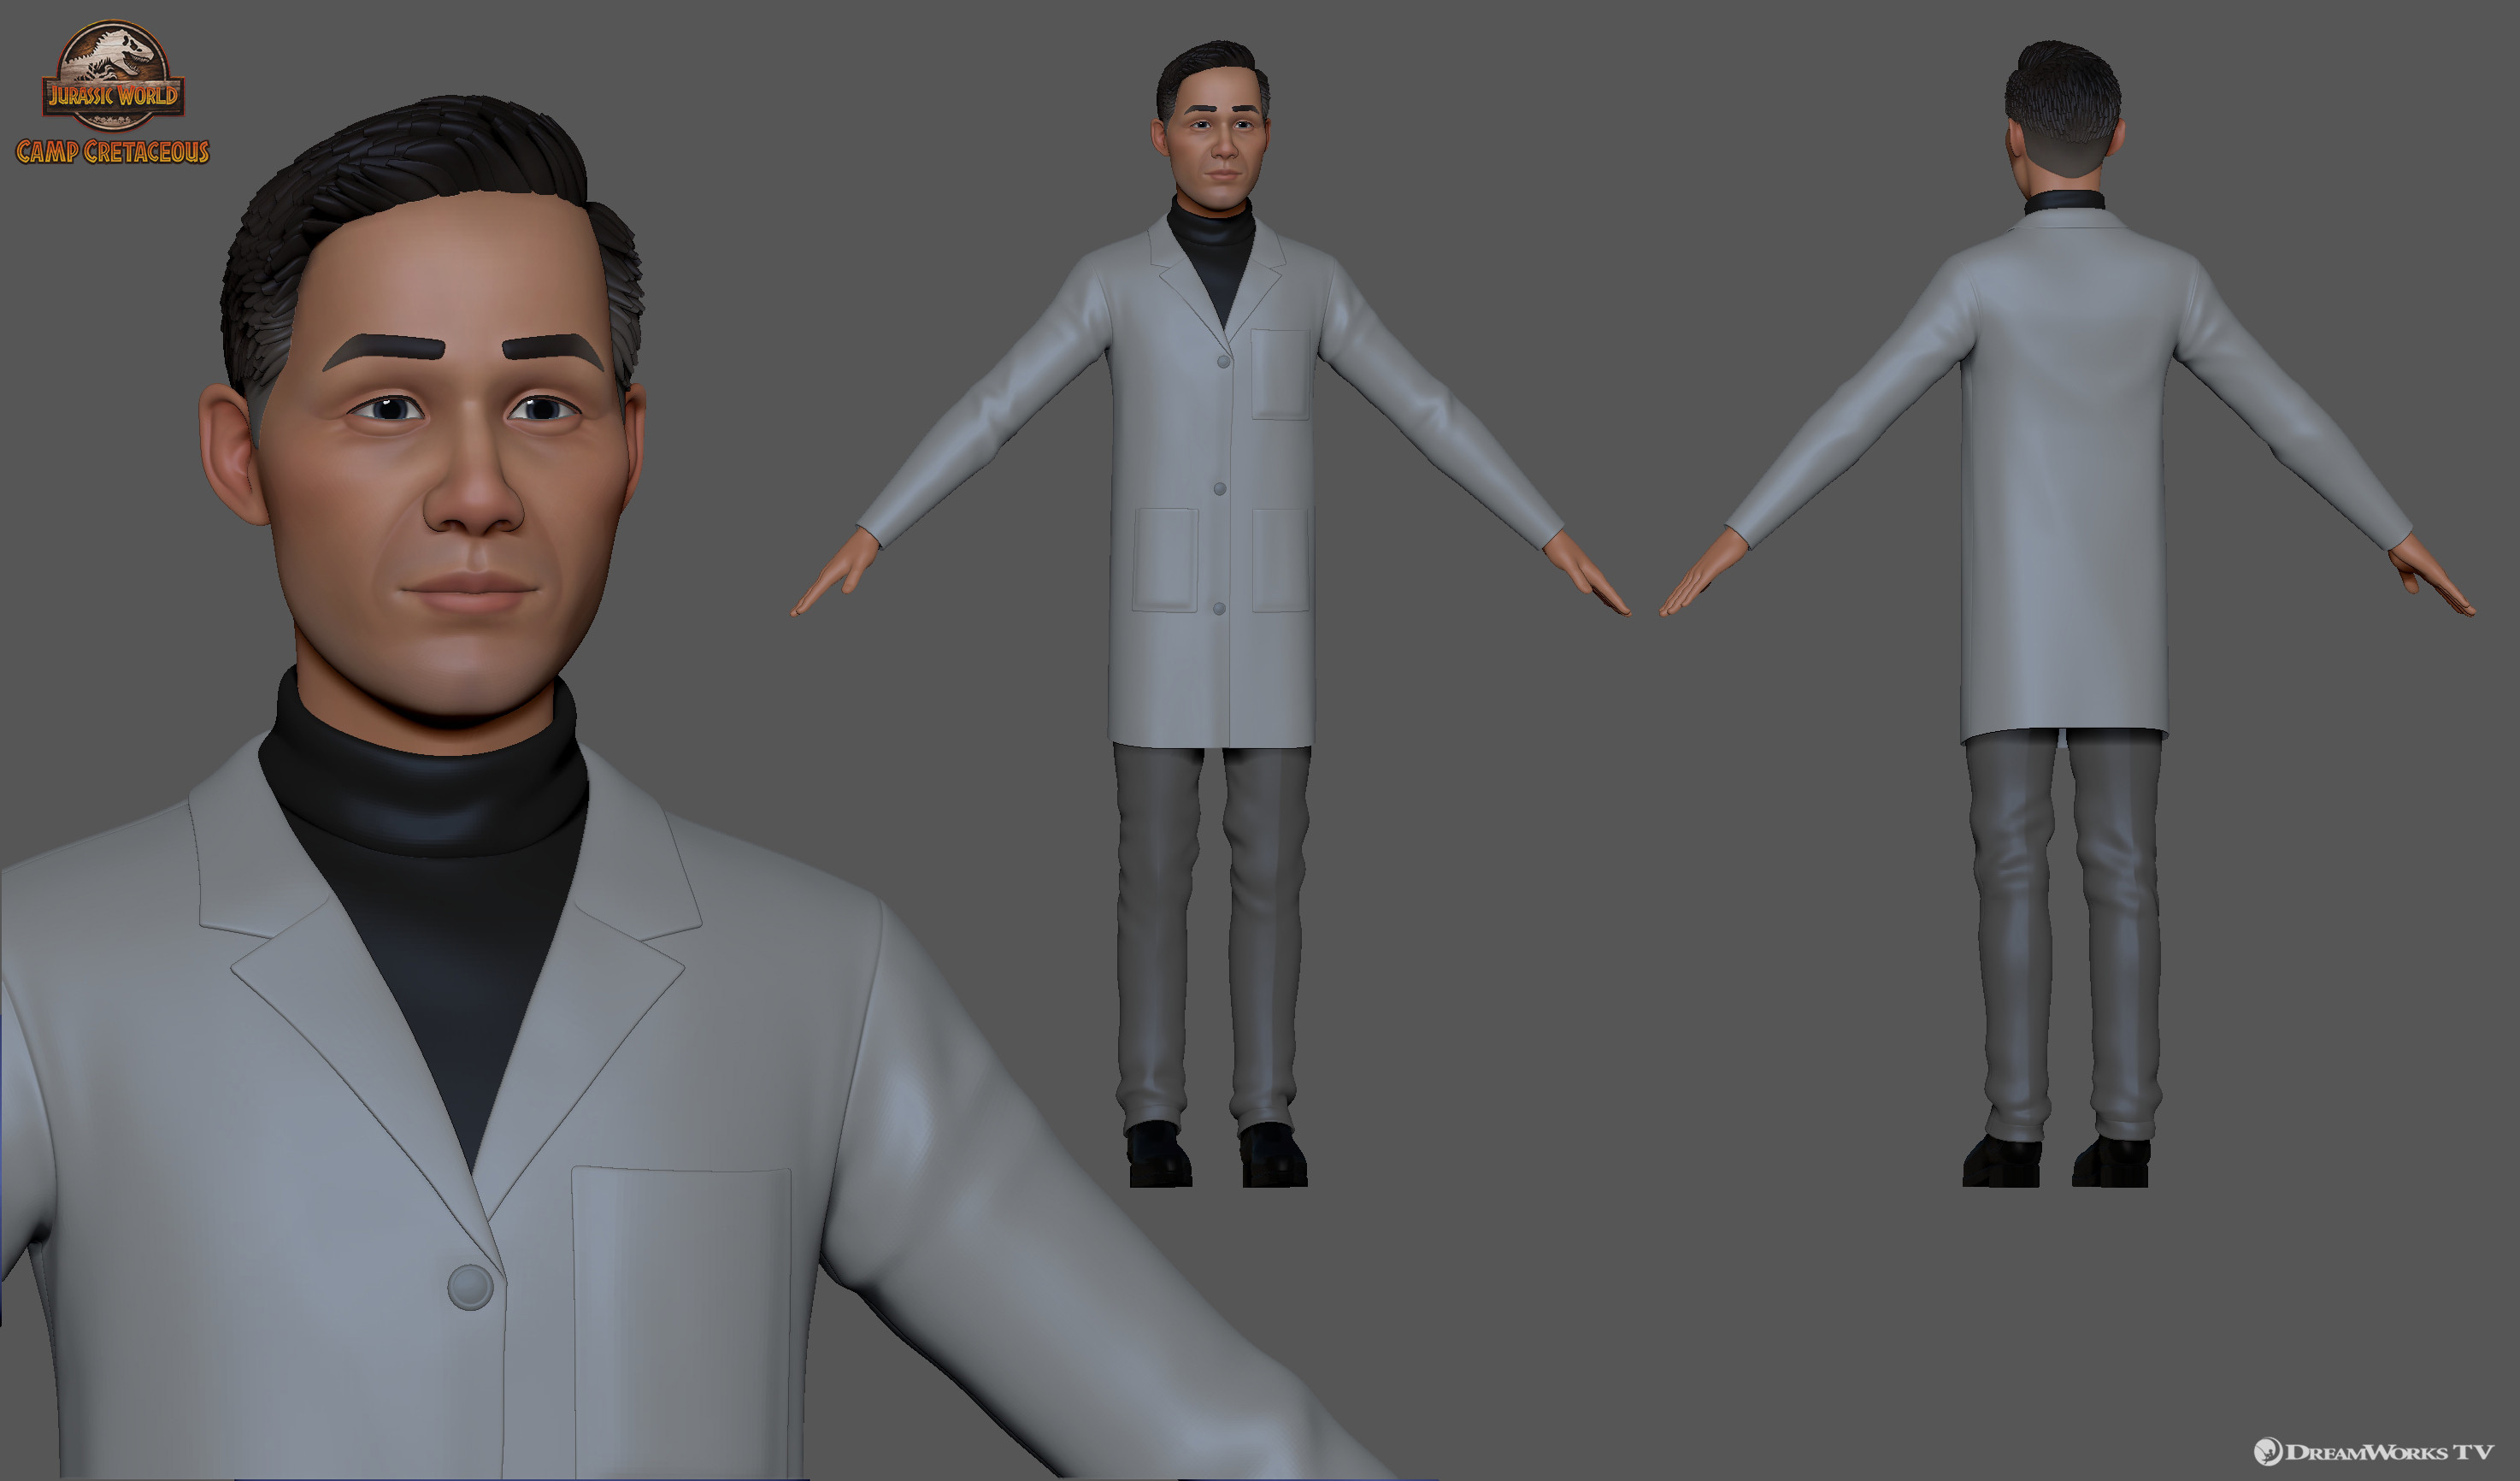 Dr. Henry Wu - Responsible for stylized likeness sculpt and modeling in collaboration with the DWTV modeling team and outsource supervision.